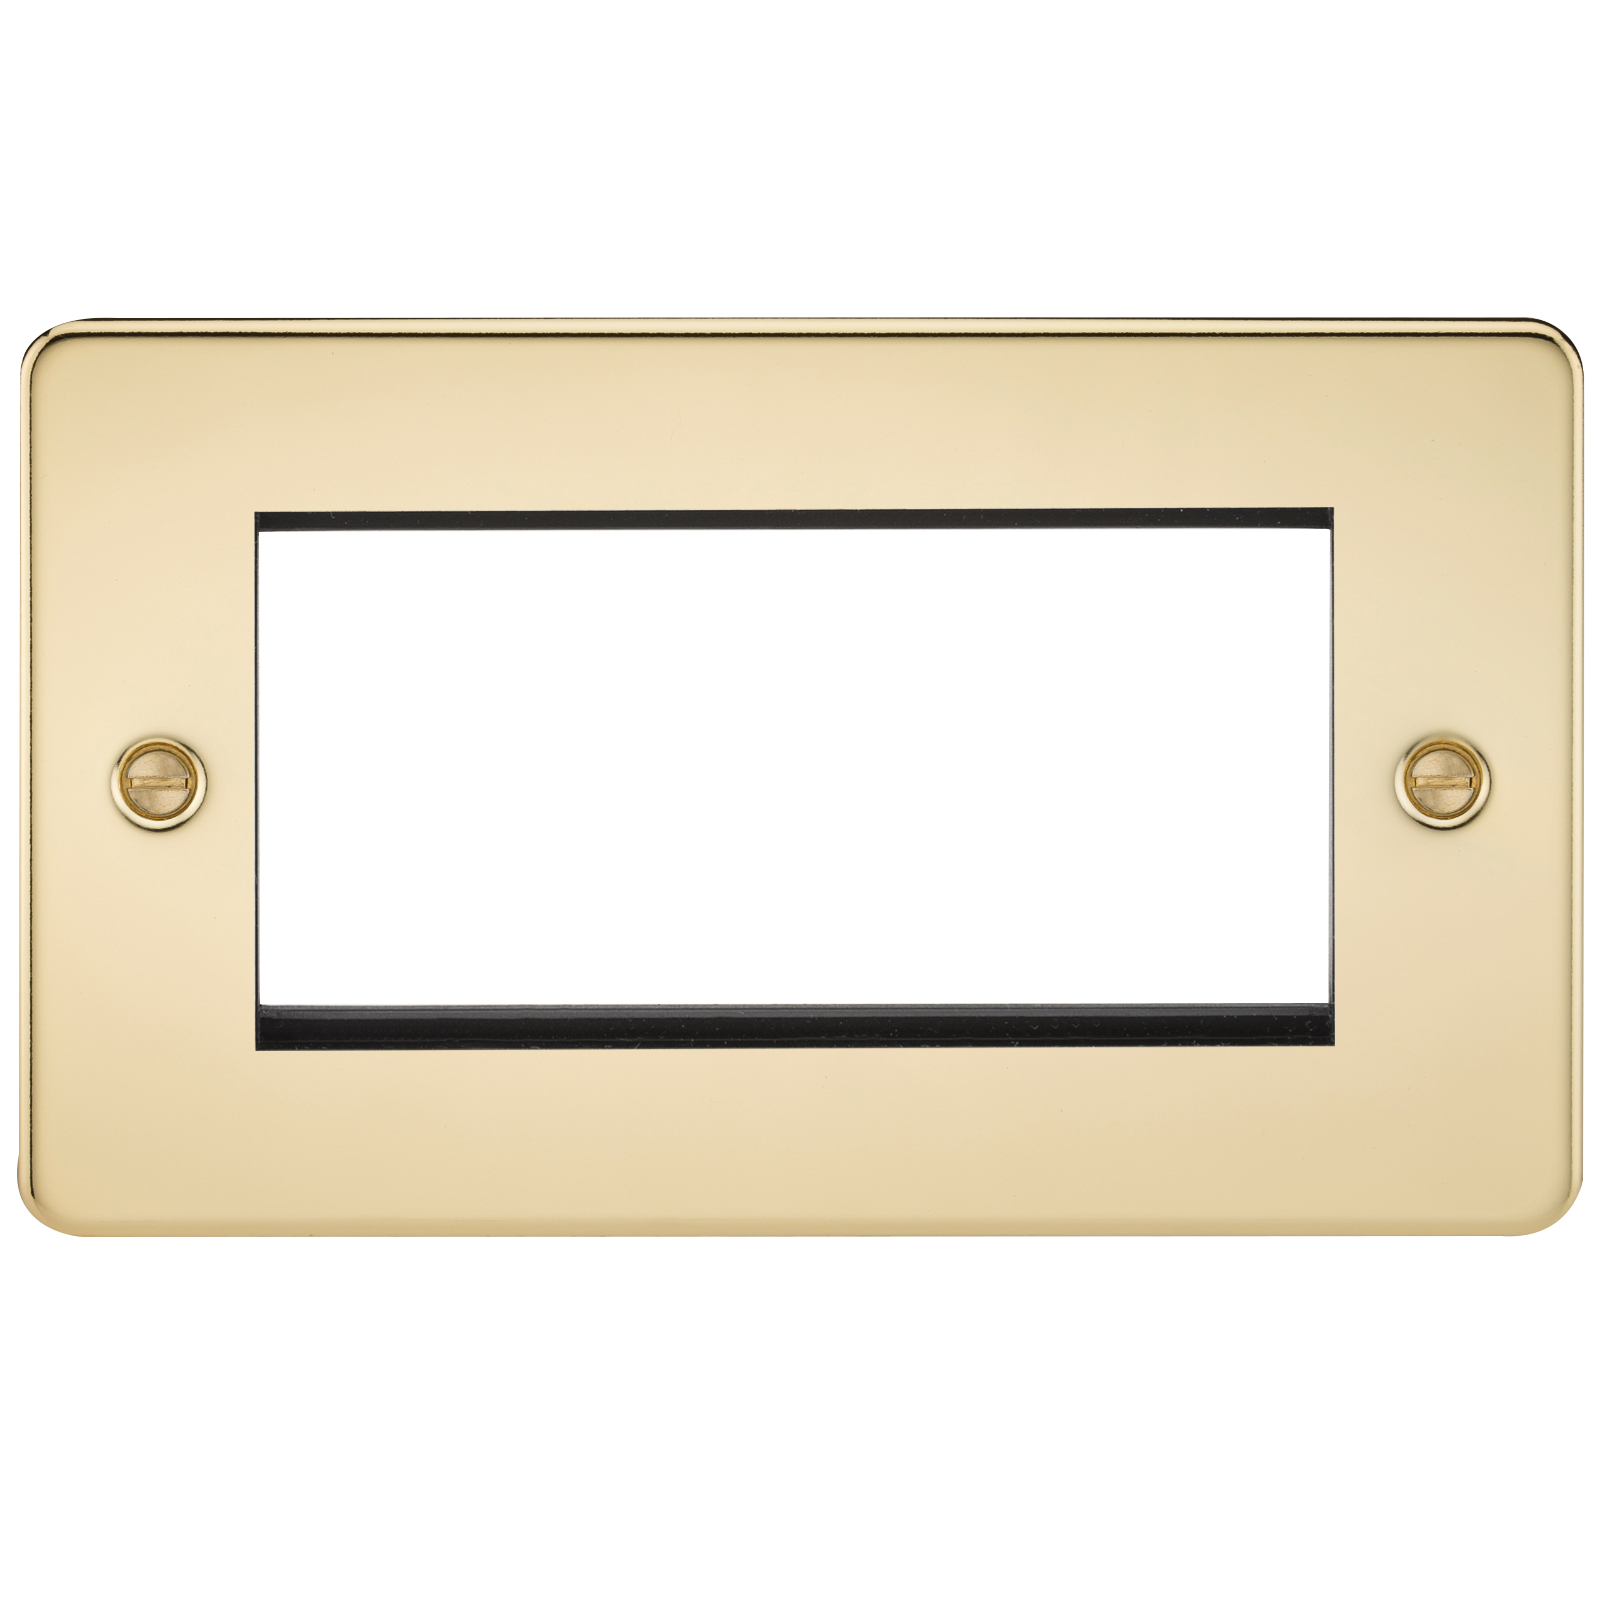 FLAT PLATE 4G MODULAR FACEPLATE - POLISHED BRASS